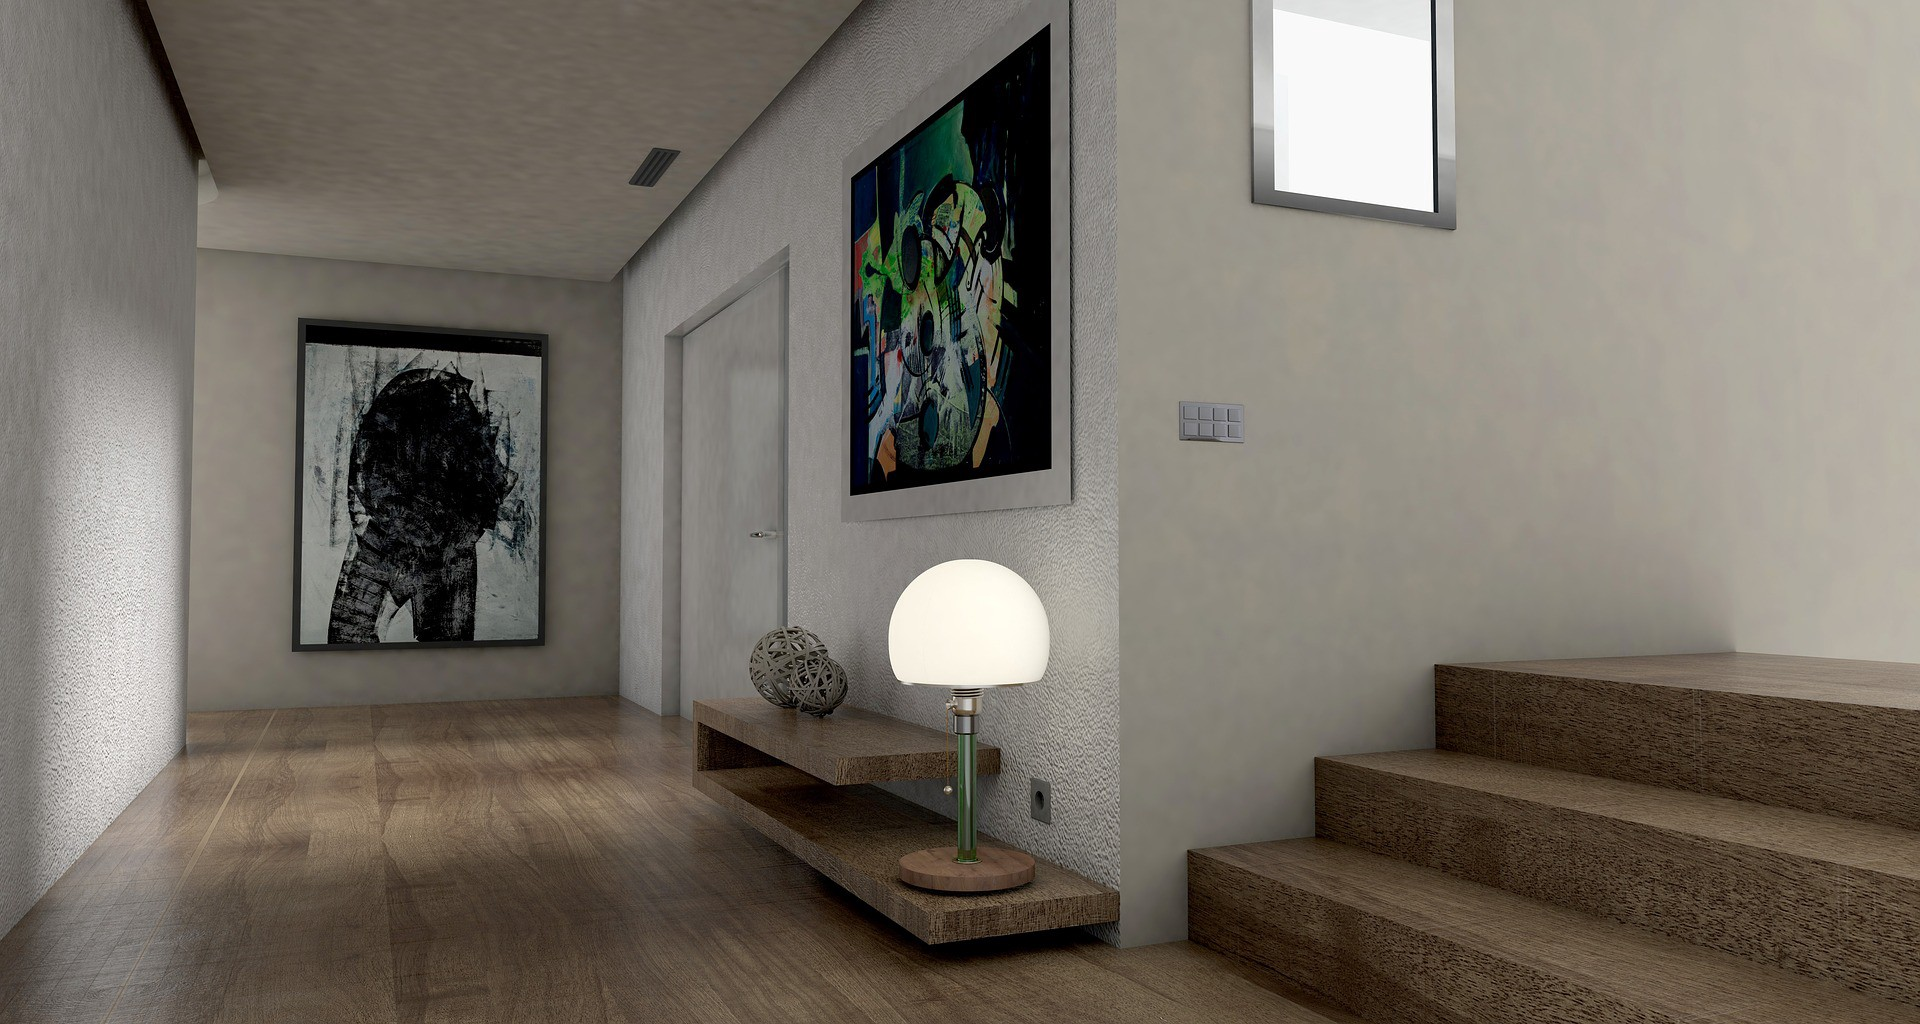 Artificial Intelligence (AI) Art is making an entrance into Interior Design